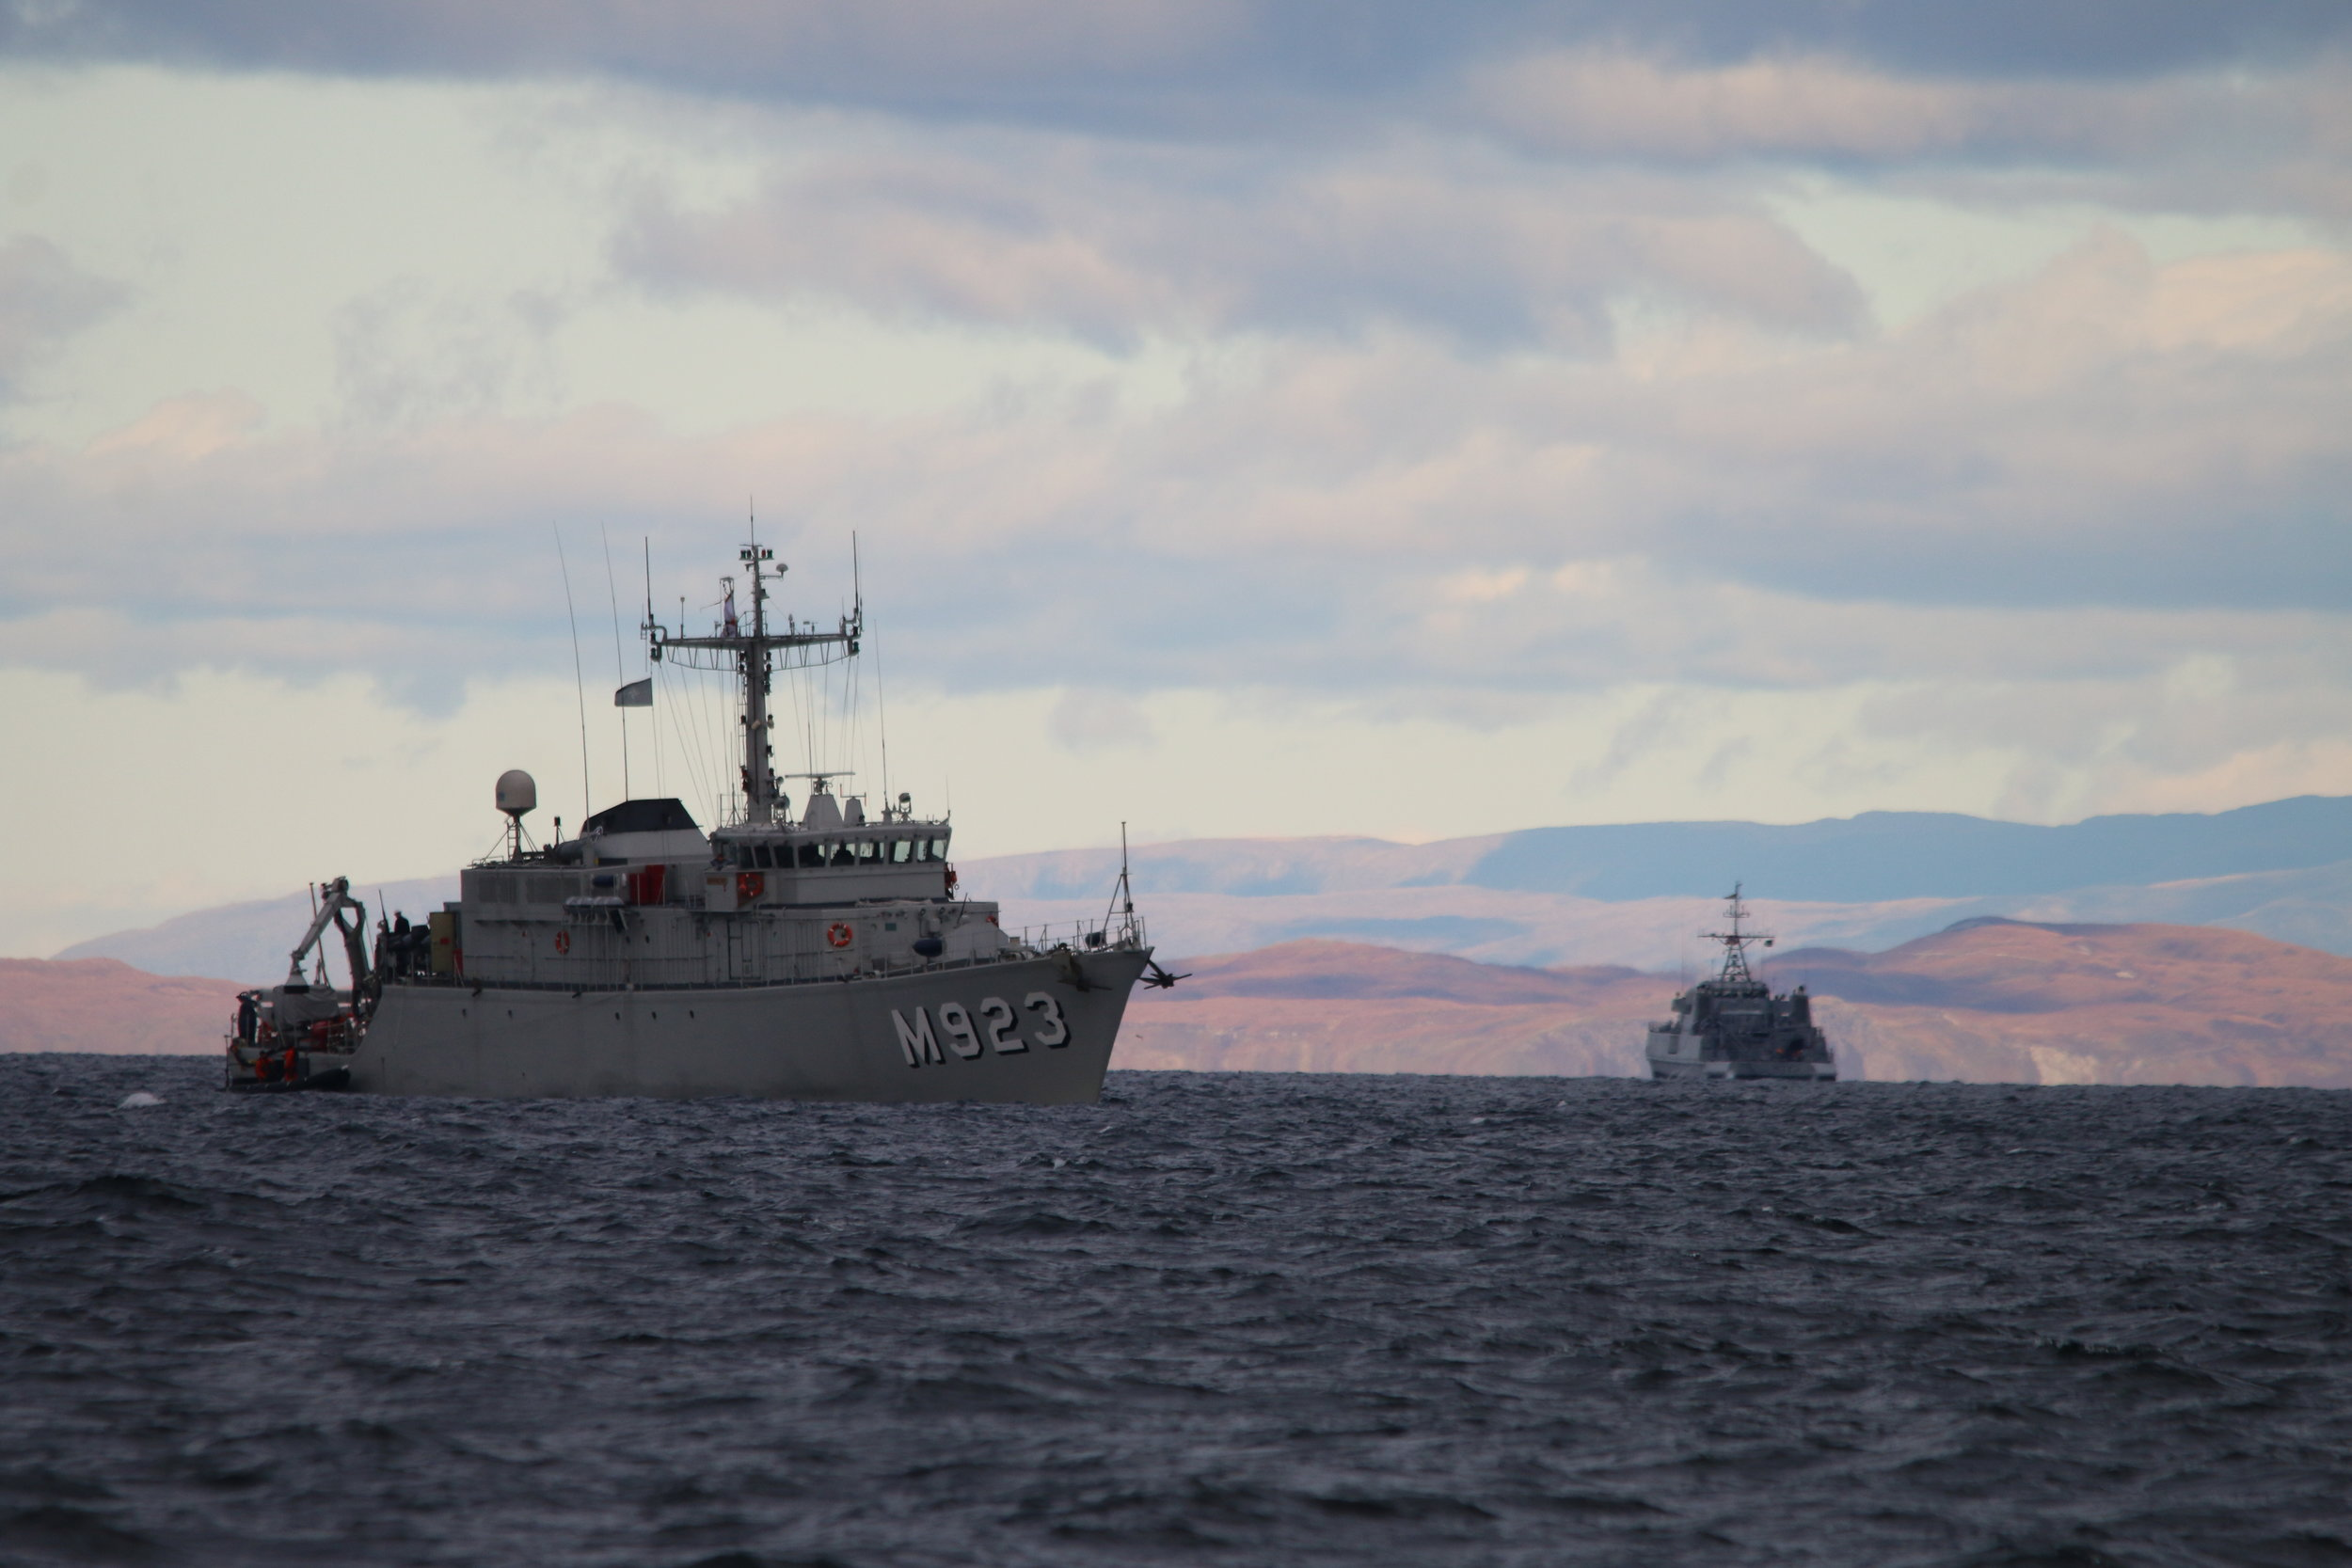 Military vessels recorded during the Joint Warrior survey